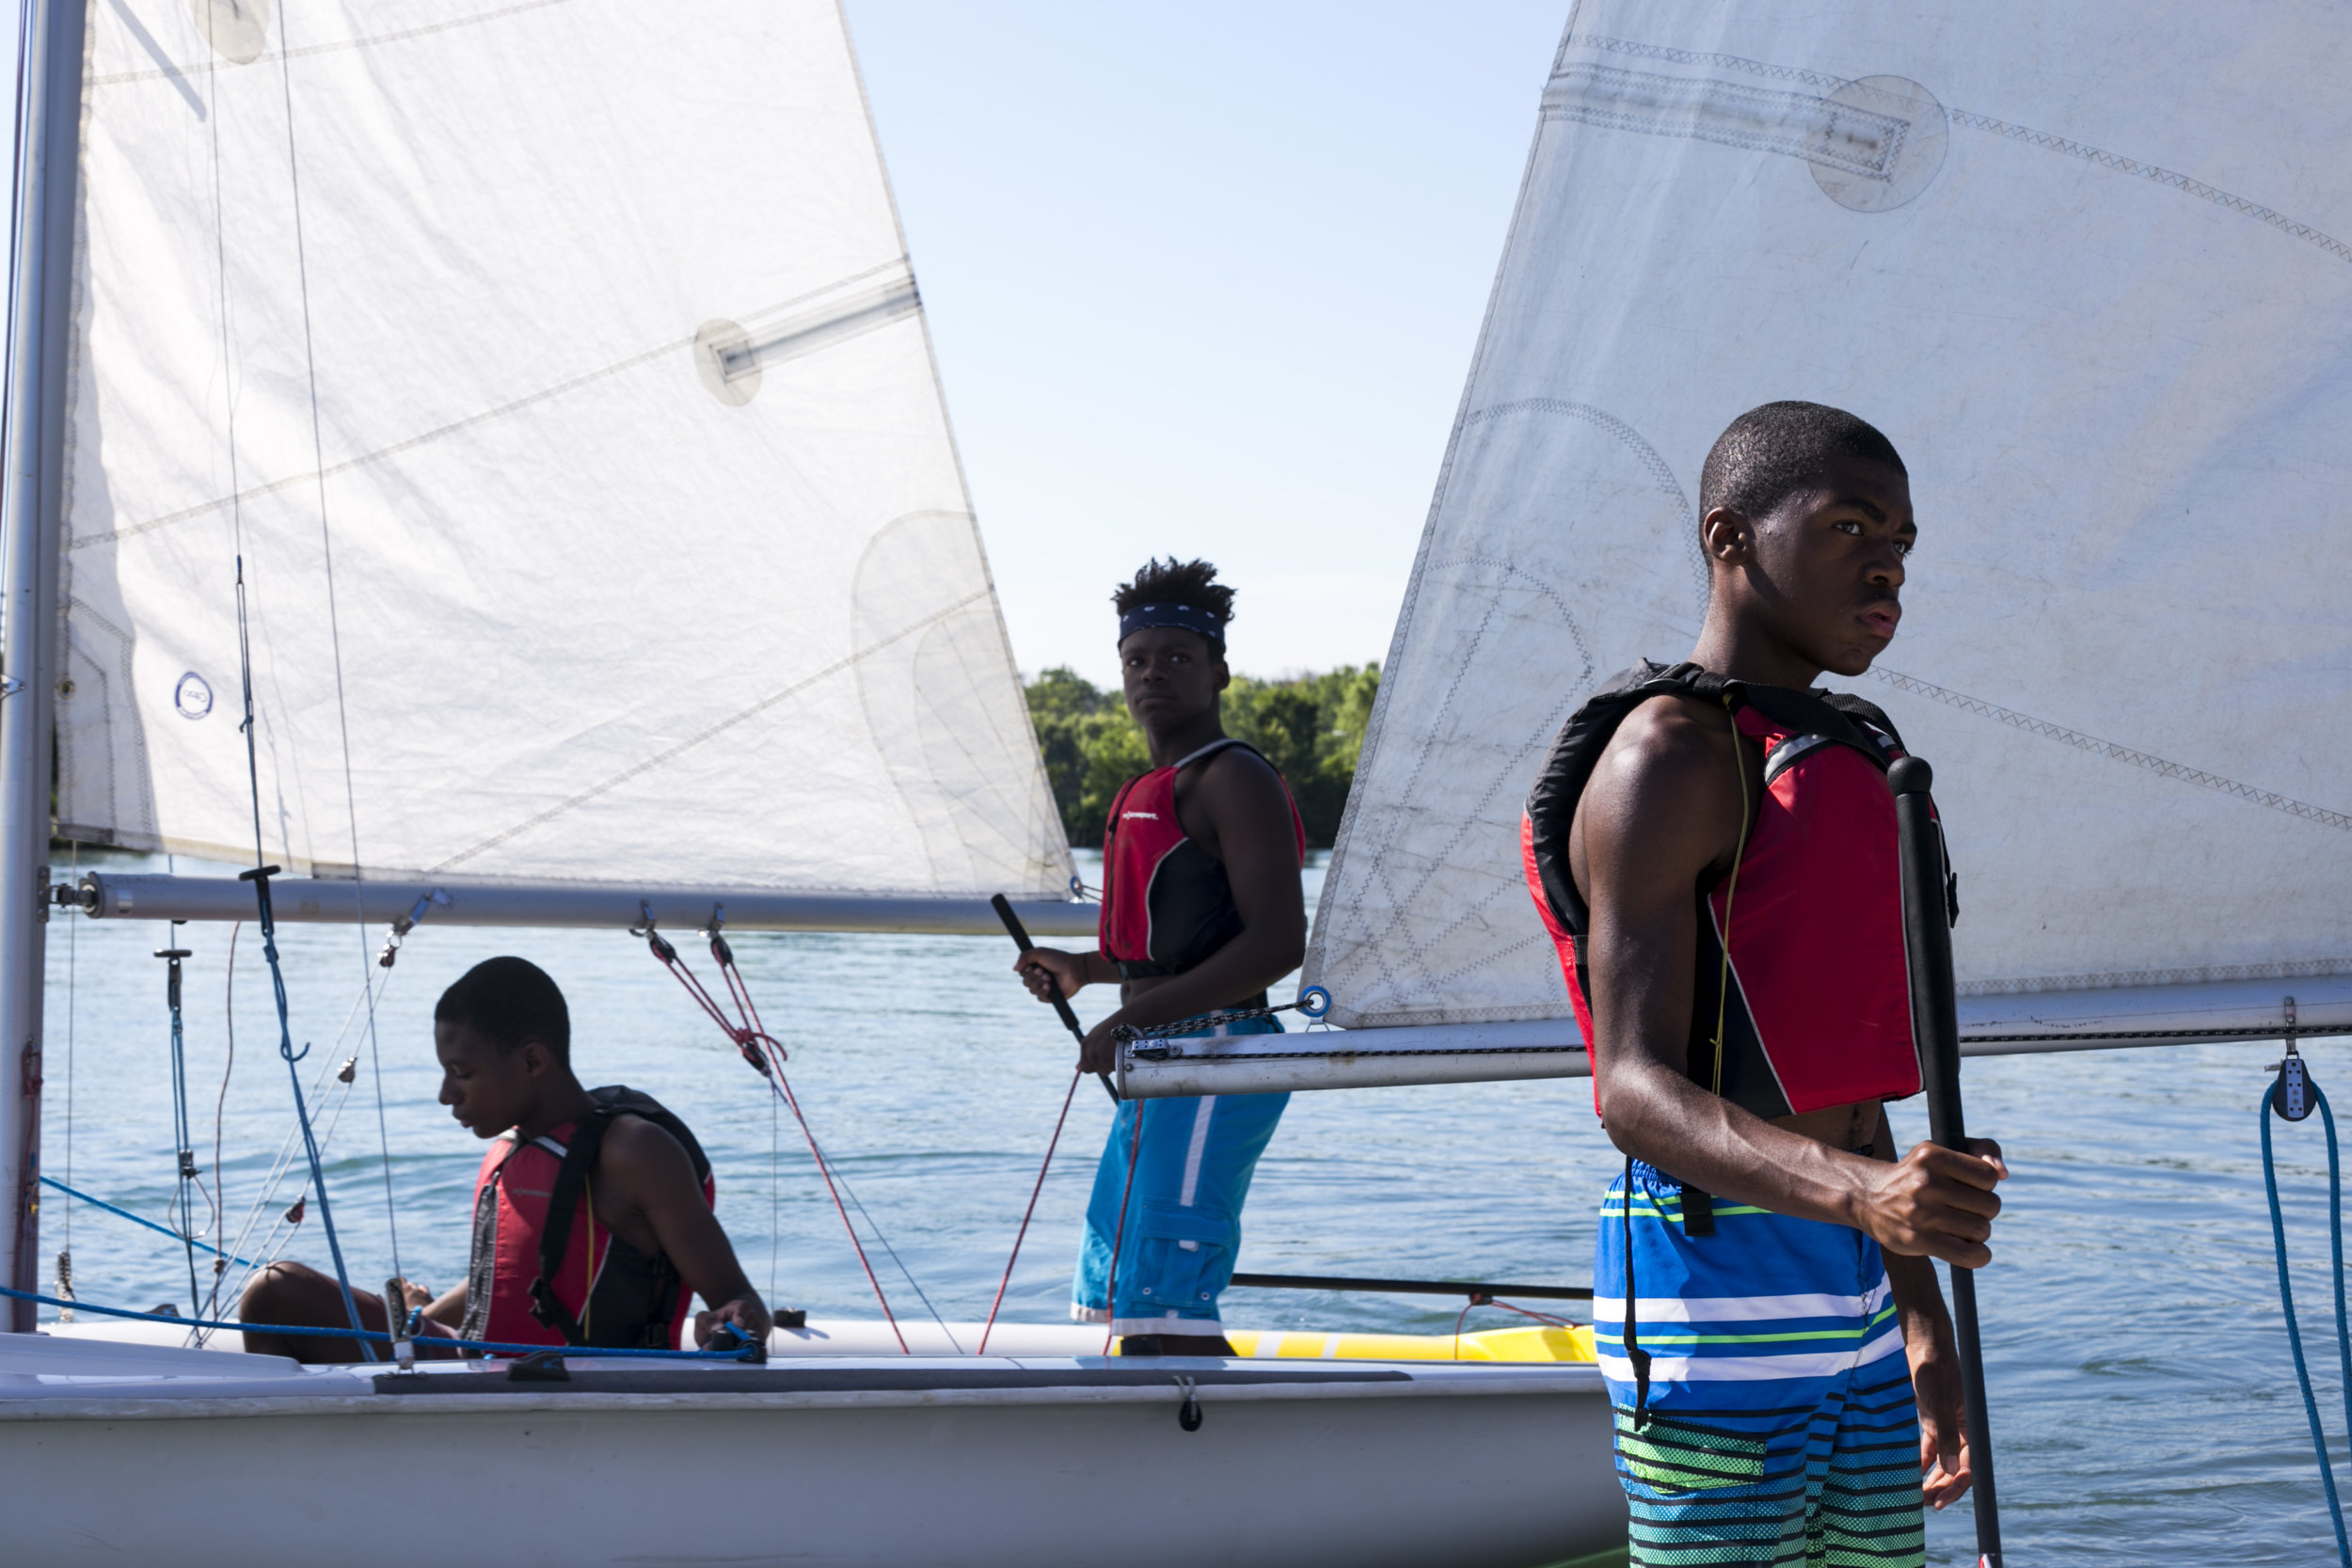 From left to right, Jacob Wooten,14, Abdullah Bayi, 14, and Jaden Walton, 12, listen to instructions from an instructor before going out on the water during a junior sailing program for Detroit youth at the Detroit Yacht Club on Tuesday, August 1, 2017